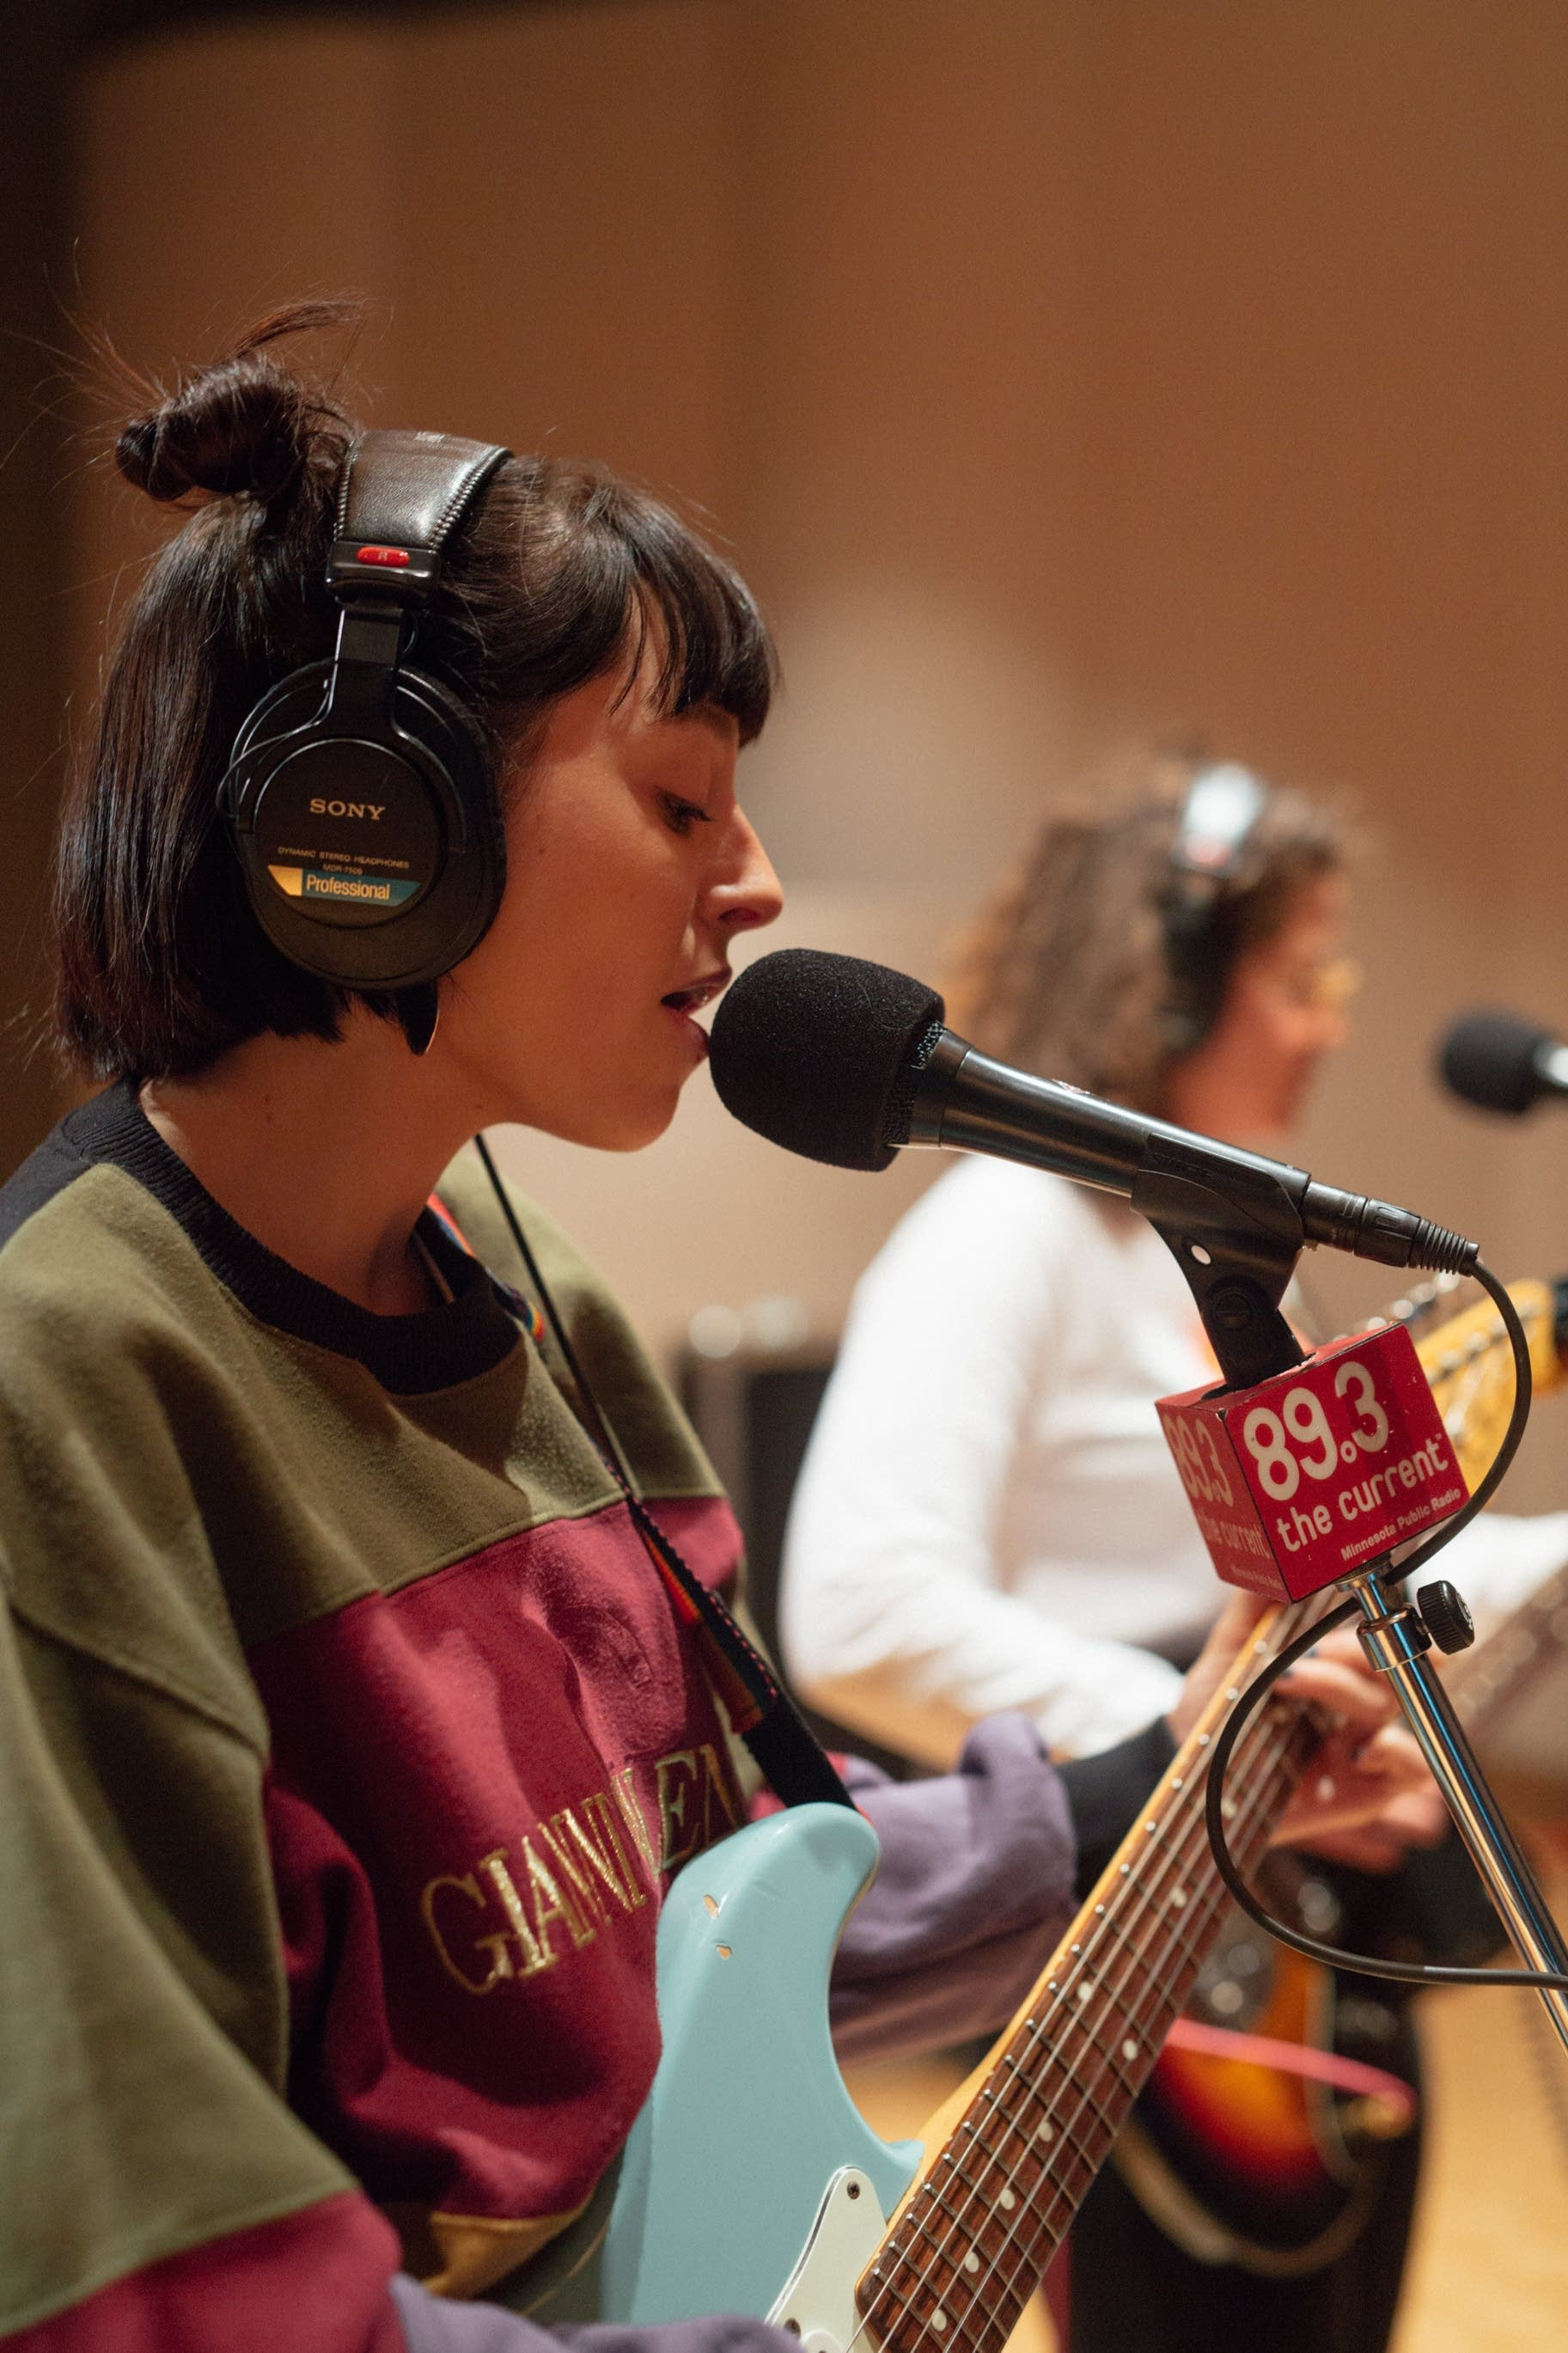 Stella Donnelly performs in The Current studio